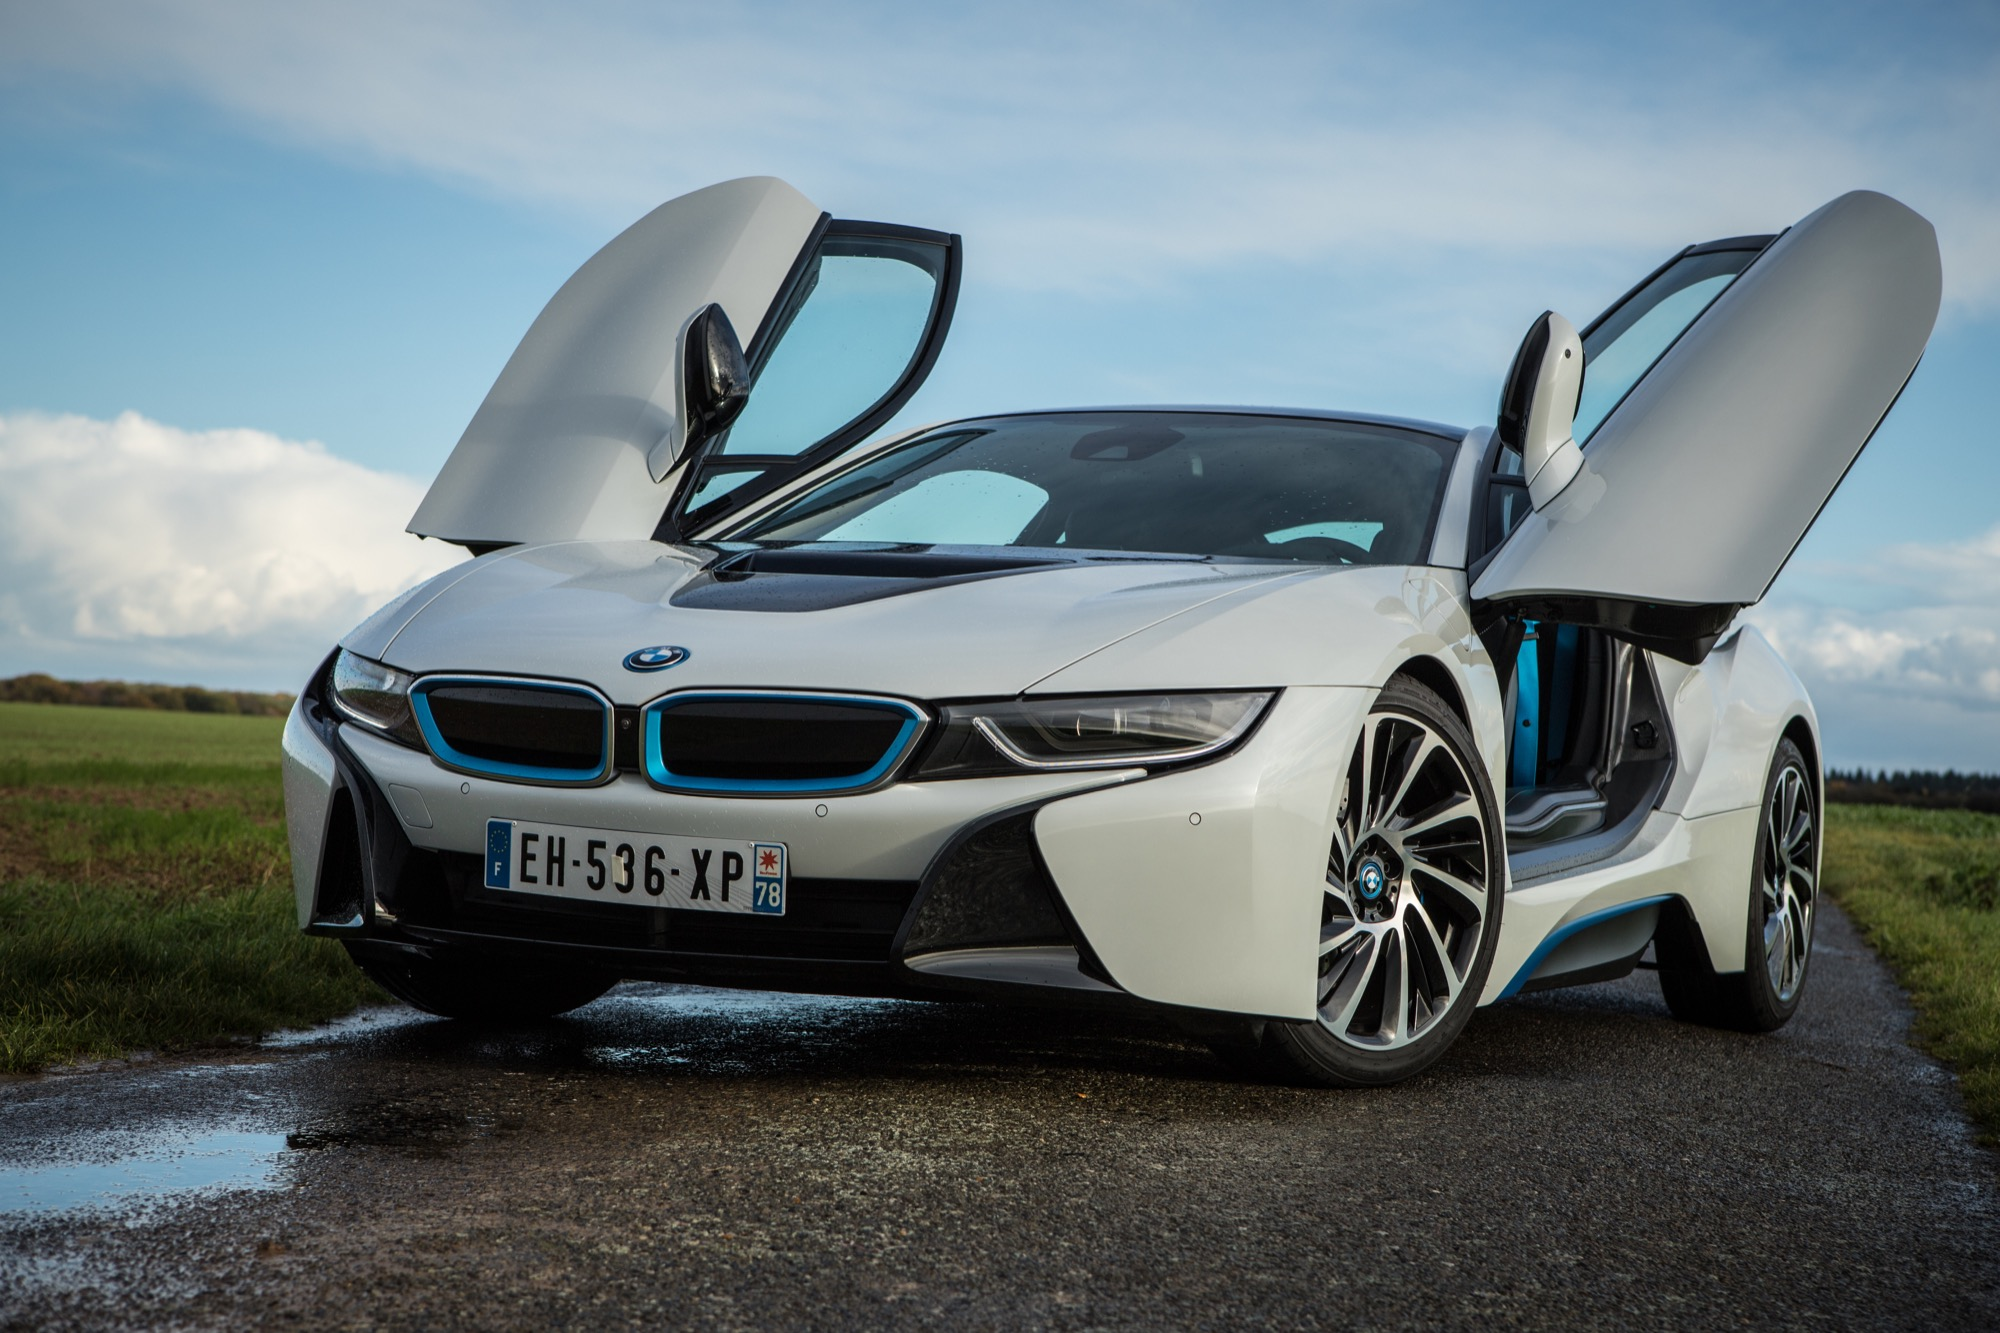 essai bmw i8 coupe exterieur 53 le blog de viinz. Black Bedroom Furniture Sets. Home Design Ideas